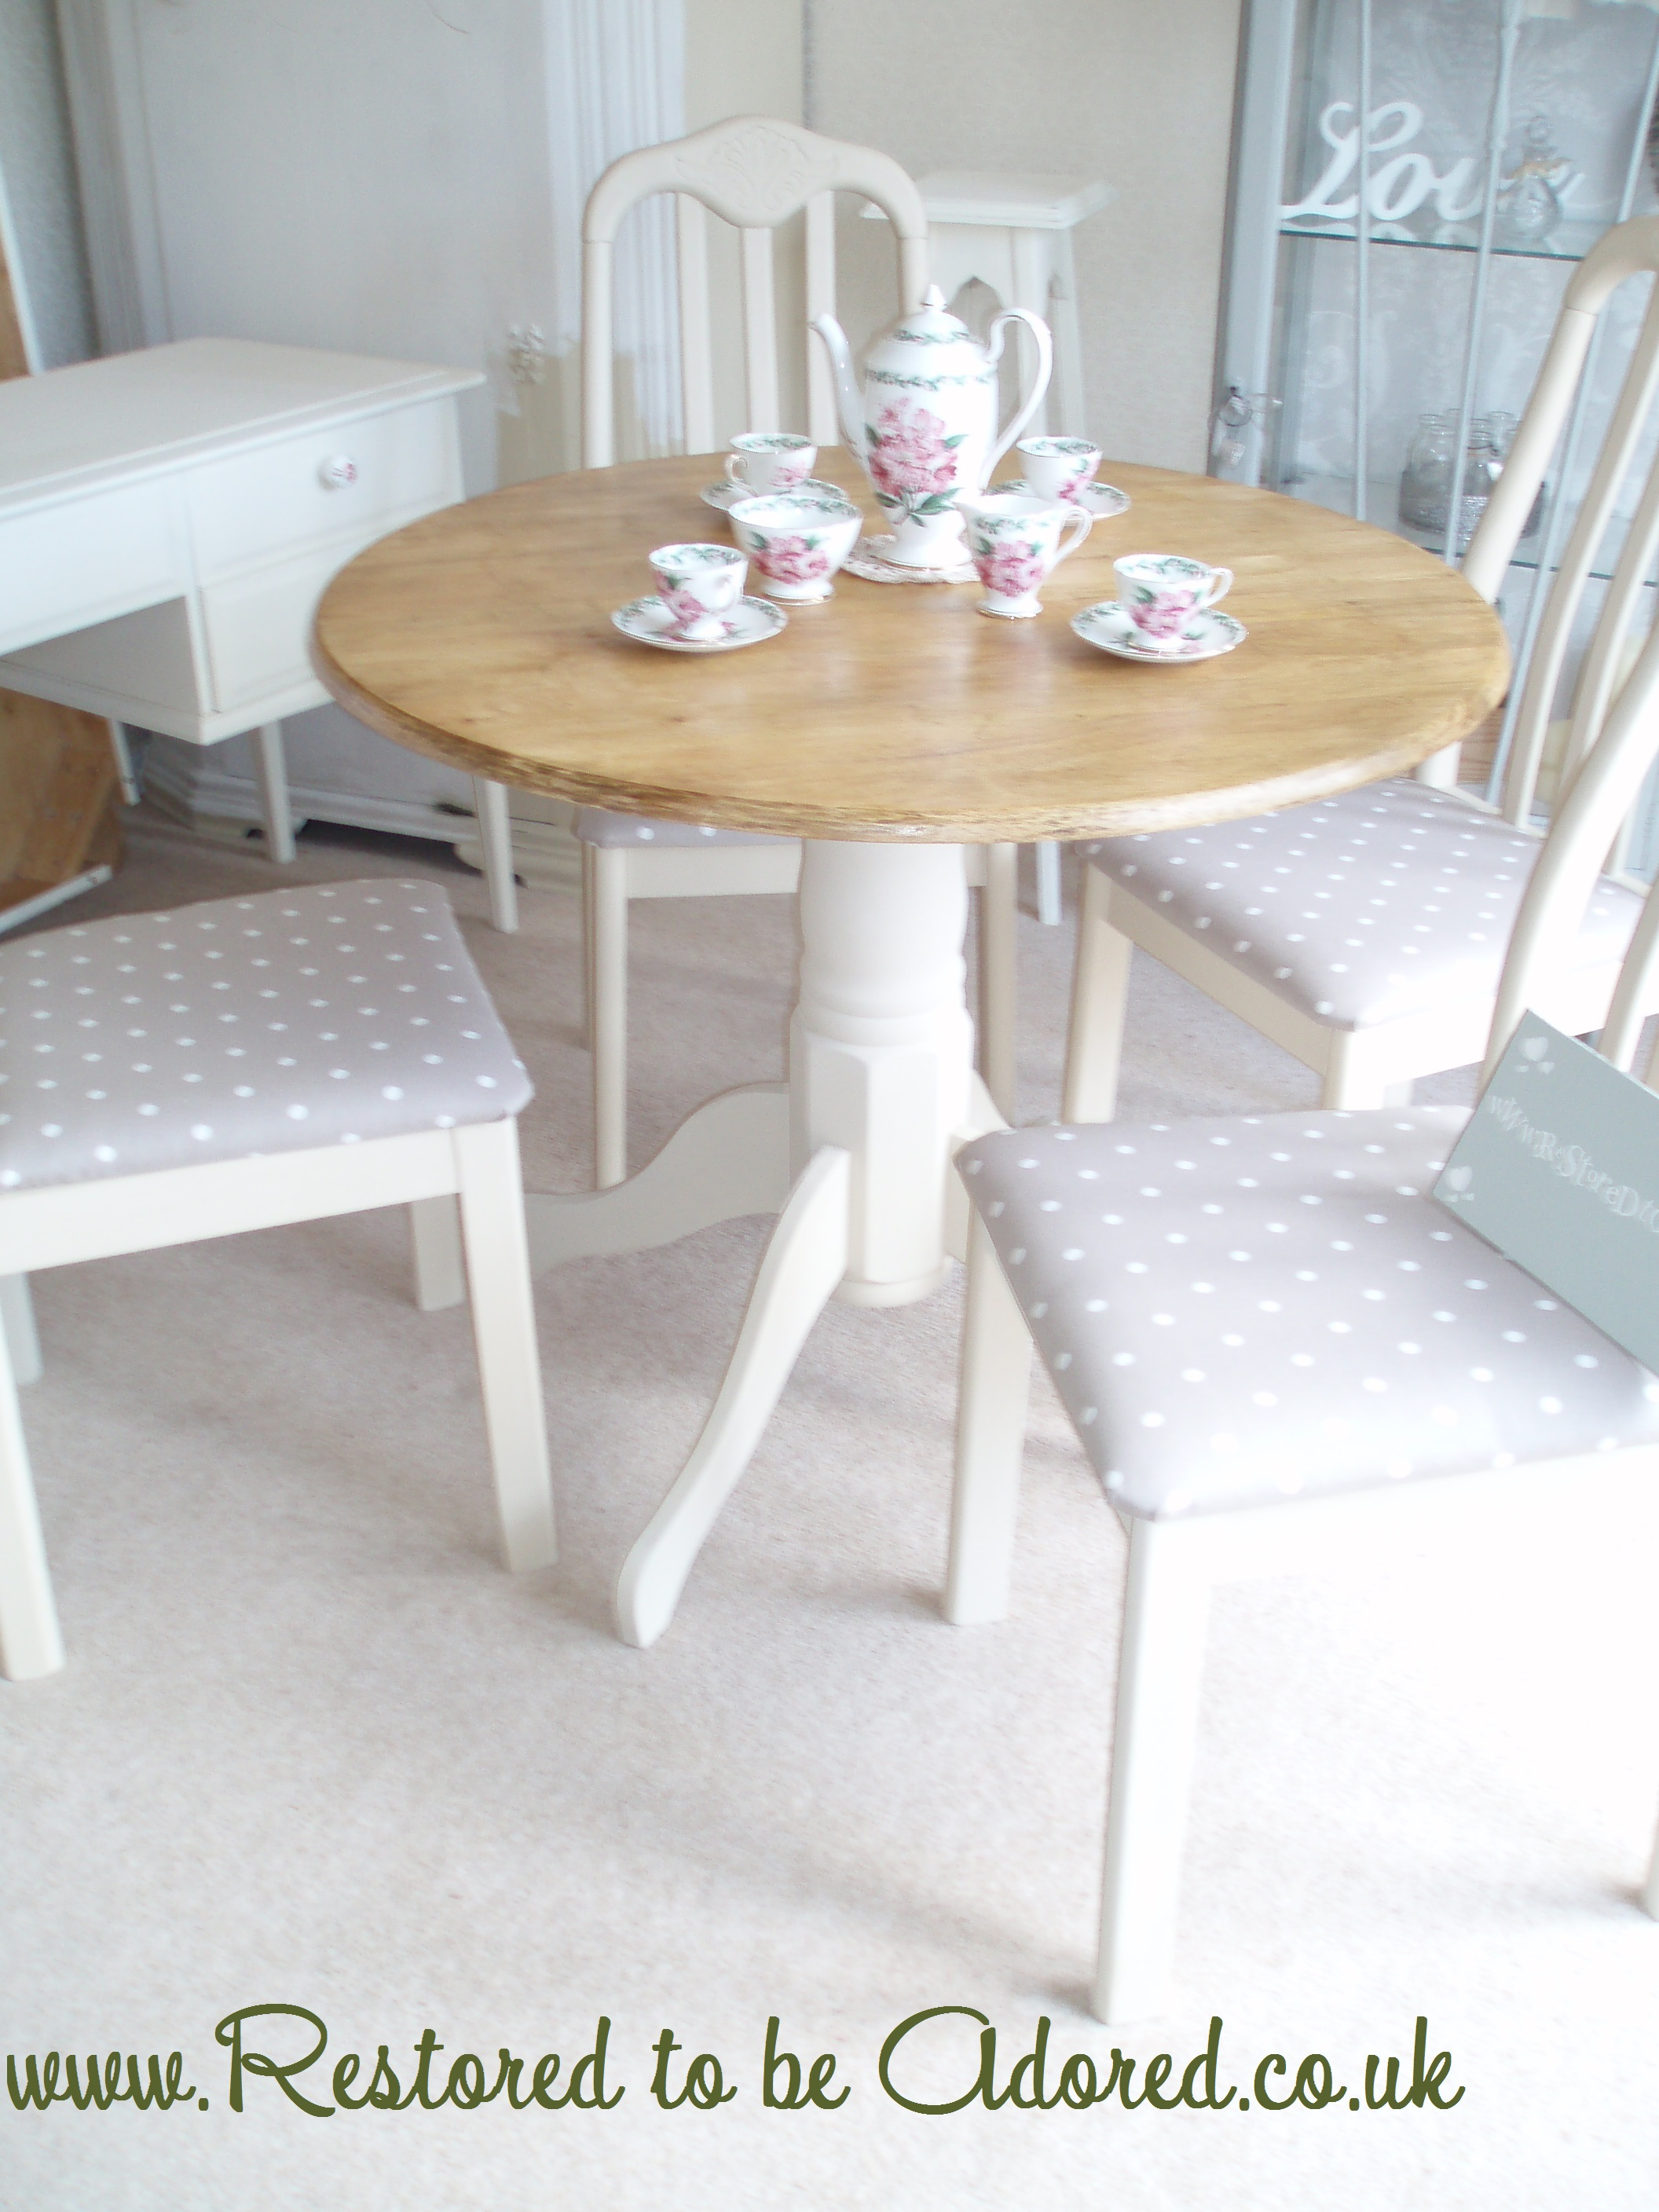 Shabby Chic Dining Table and Chairs ~ Before and After u2013 Restored to be Adored